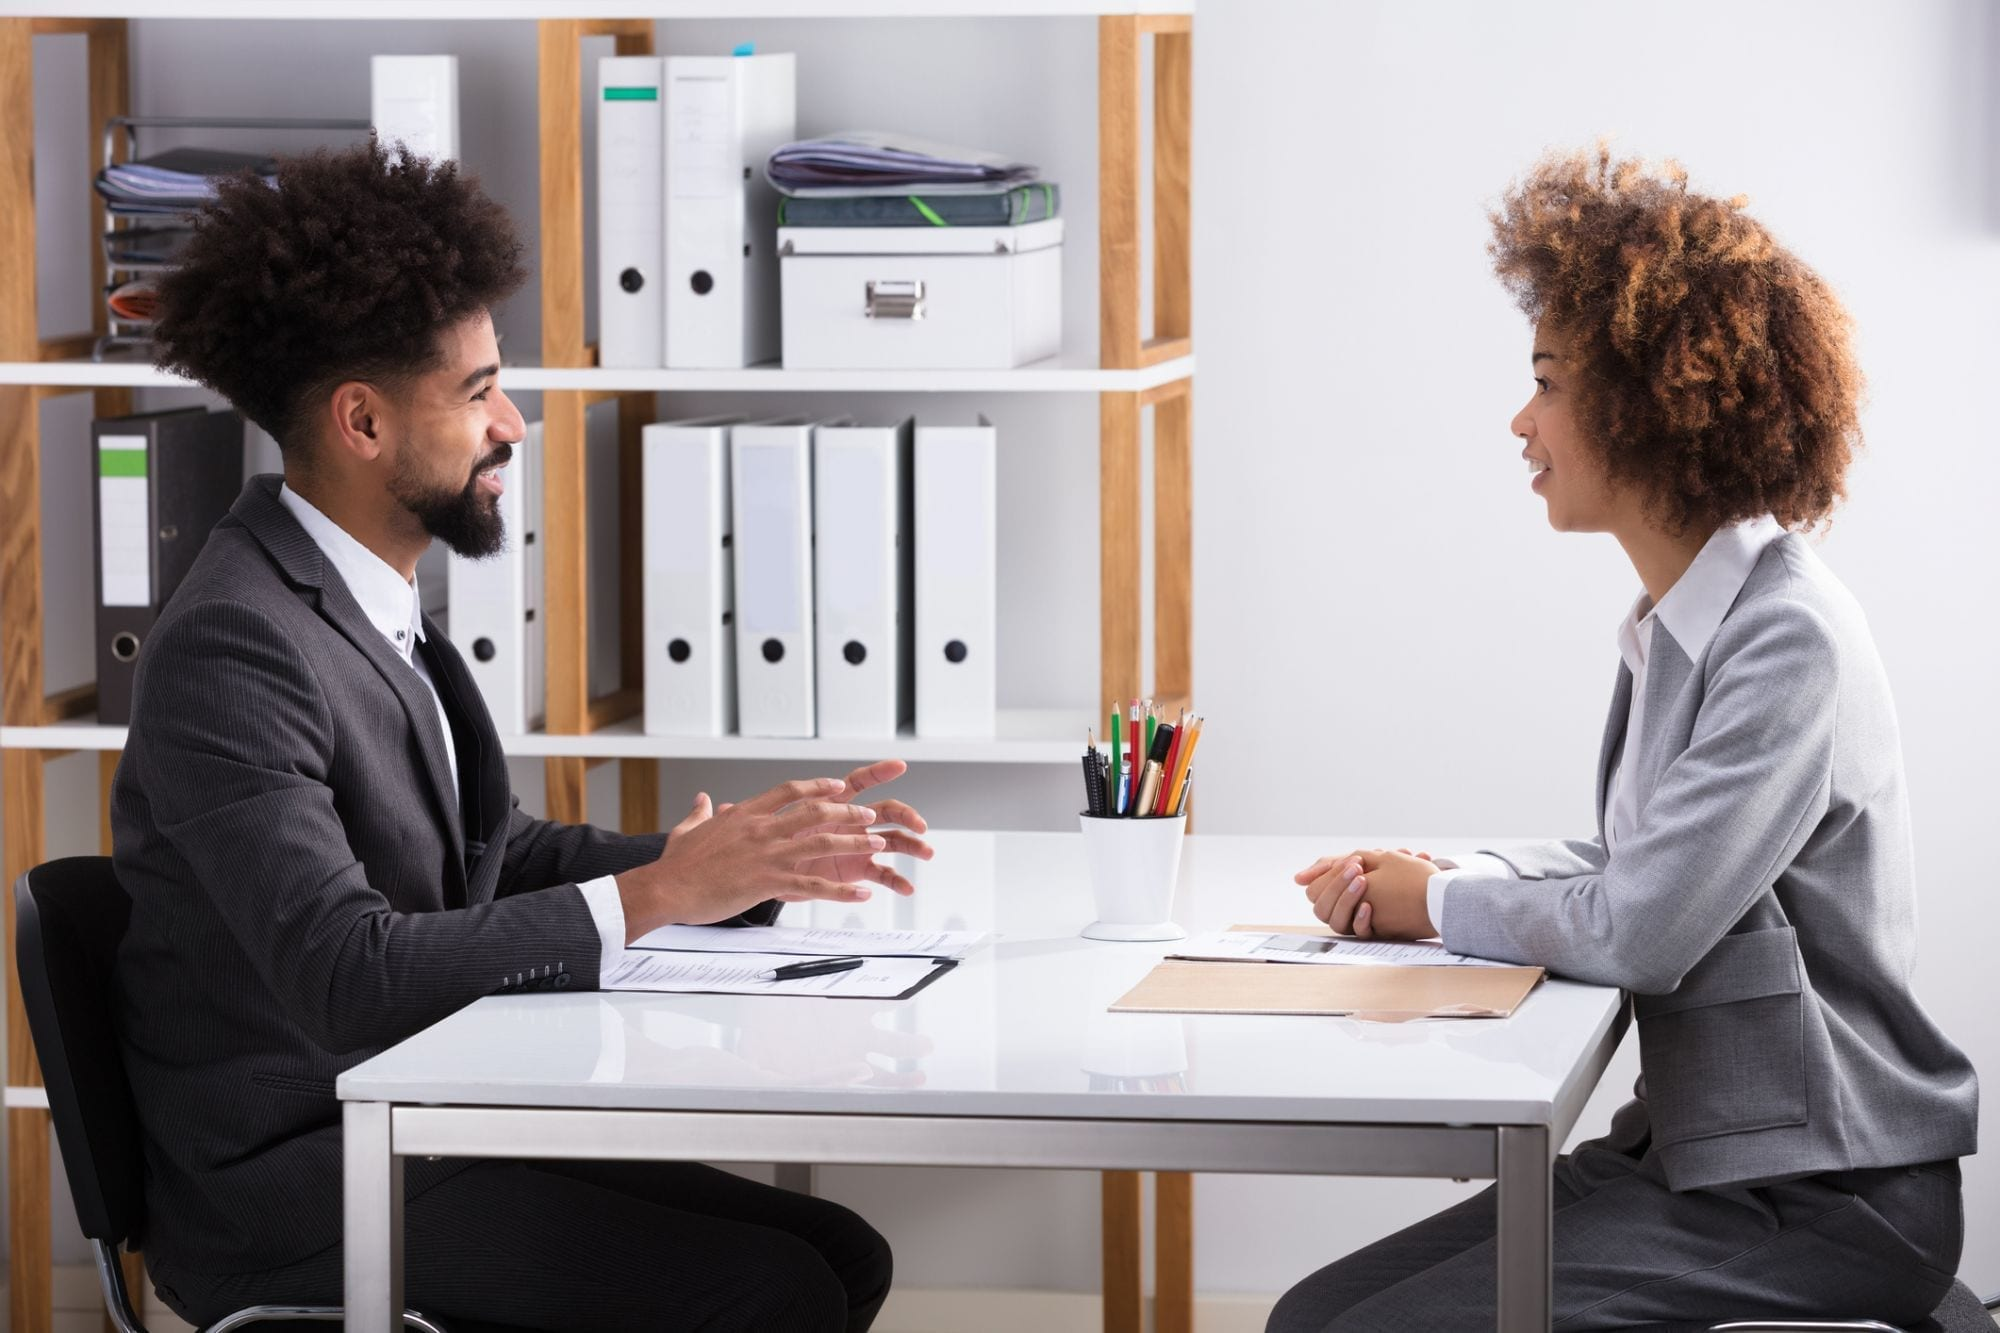 Job interview preparation tips